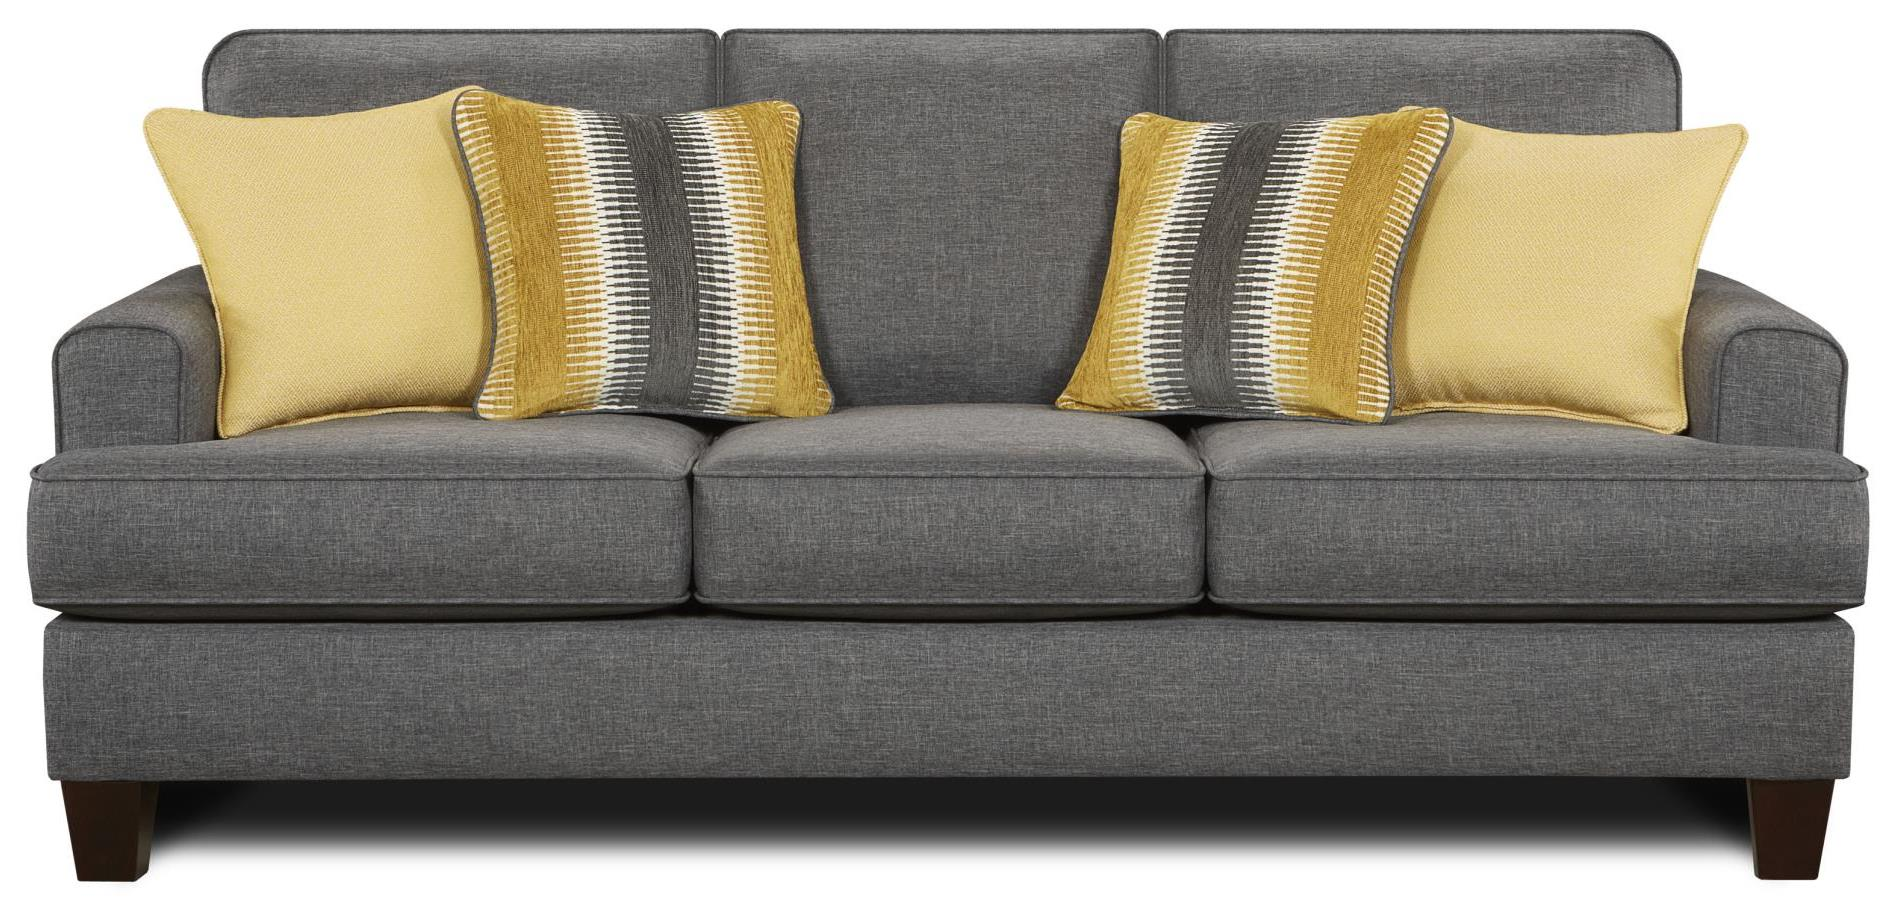 2600 Sleeper by Fusion Furniture at Prime Brothers Furniture